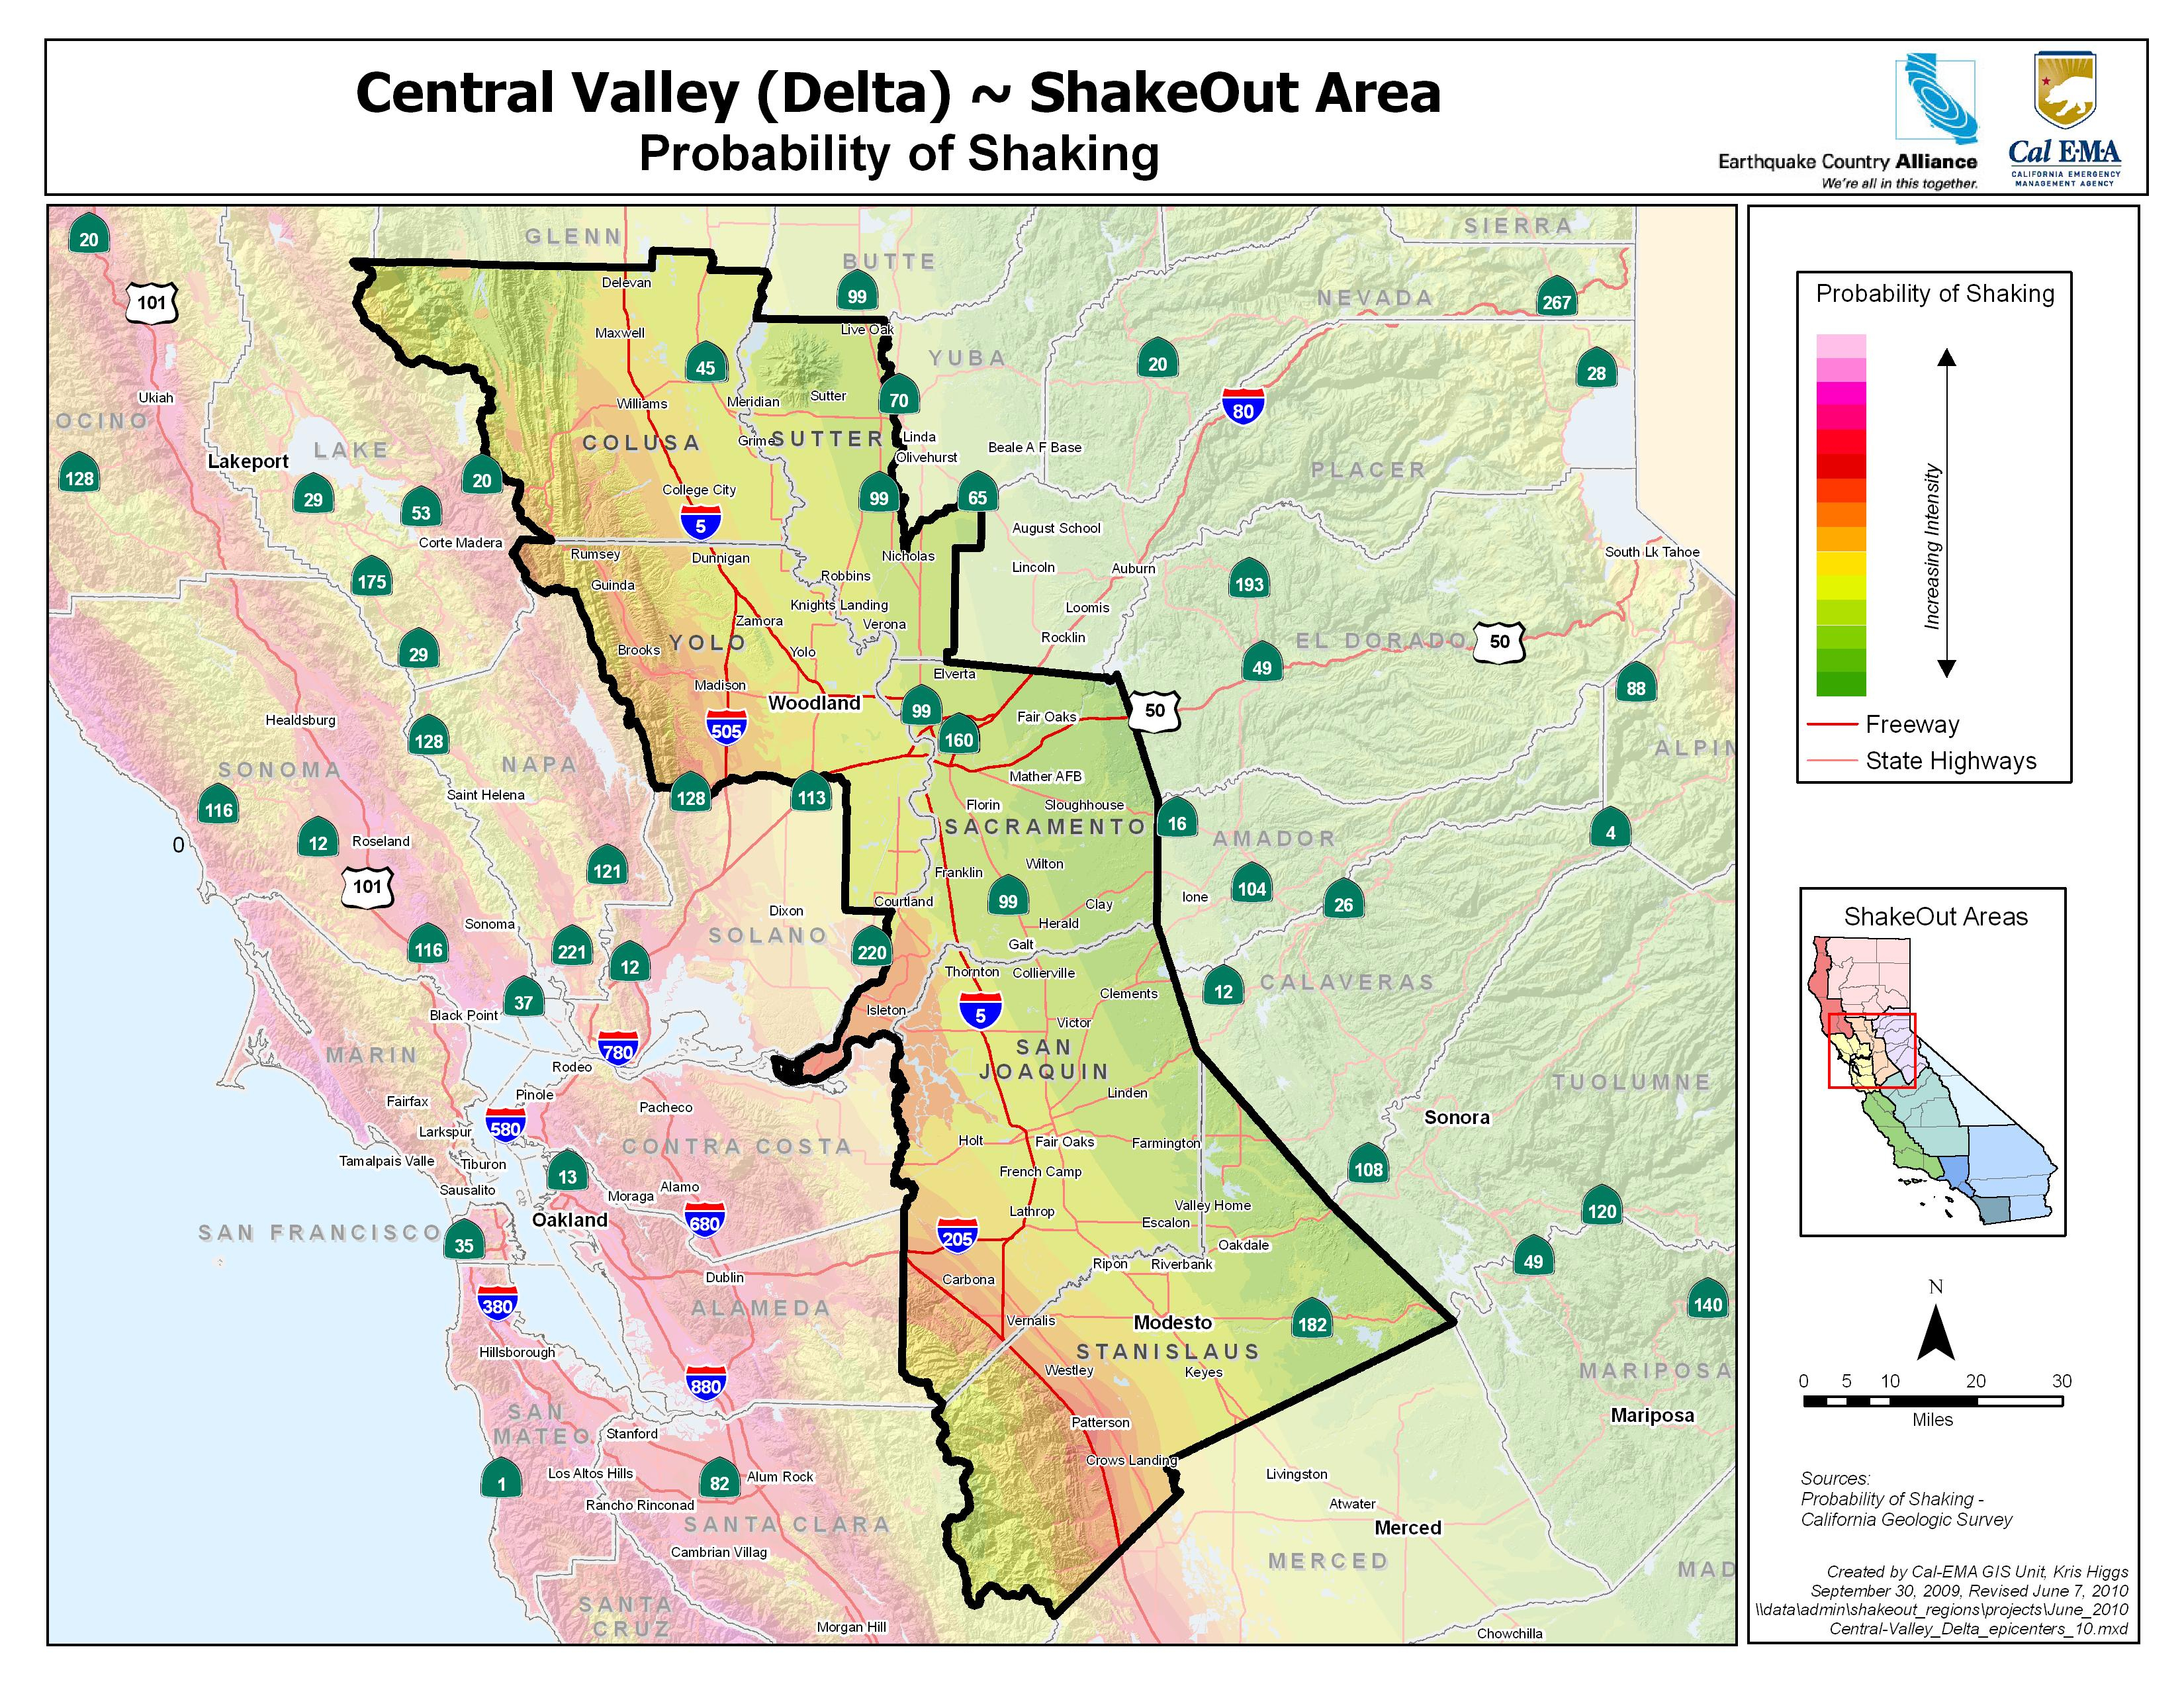 Central Valley Delta Probability Map Google Maps California Usgs - Usgs California Nevada Earthquake Map